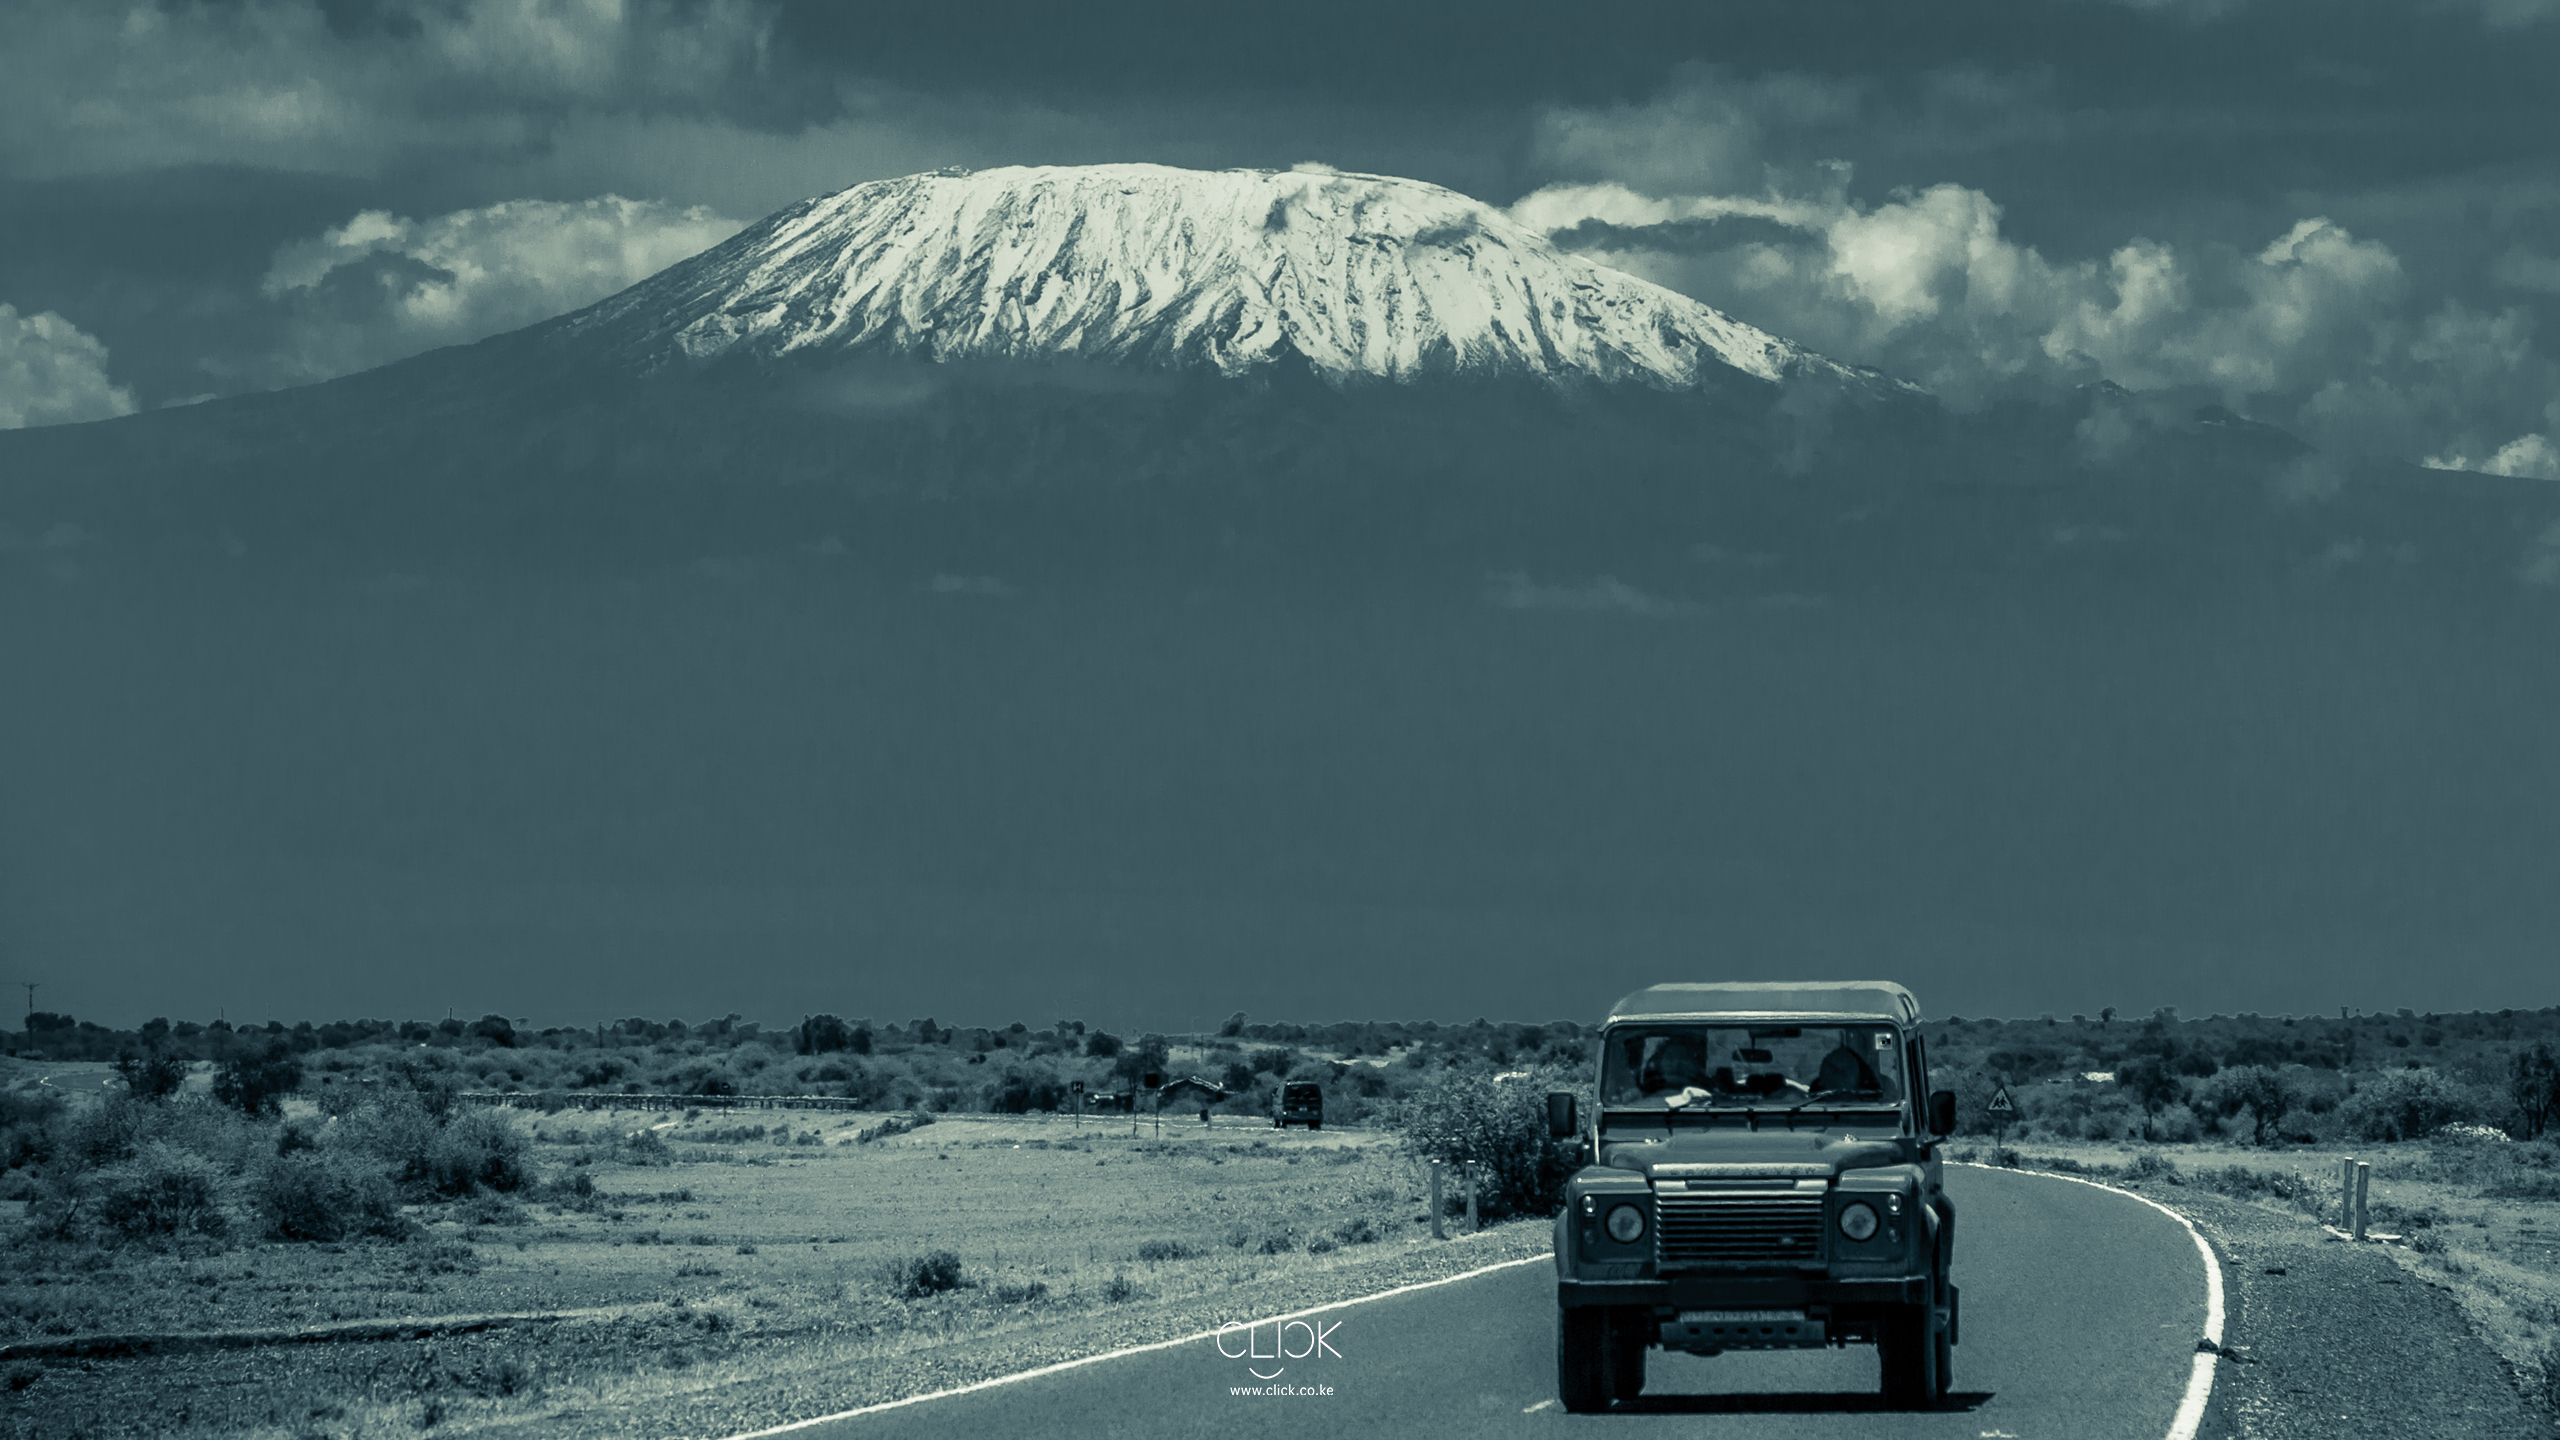 Car Wallpaper For Mobile Phone Hd African Screens 40 Kilimanjaro Landrover Clicking With